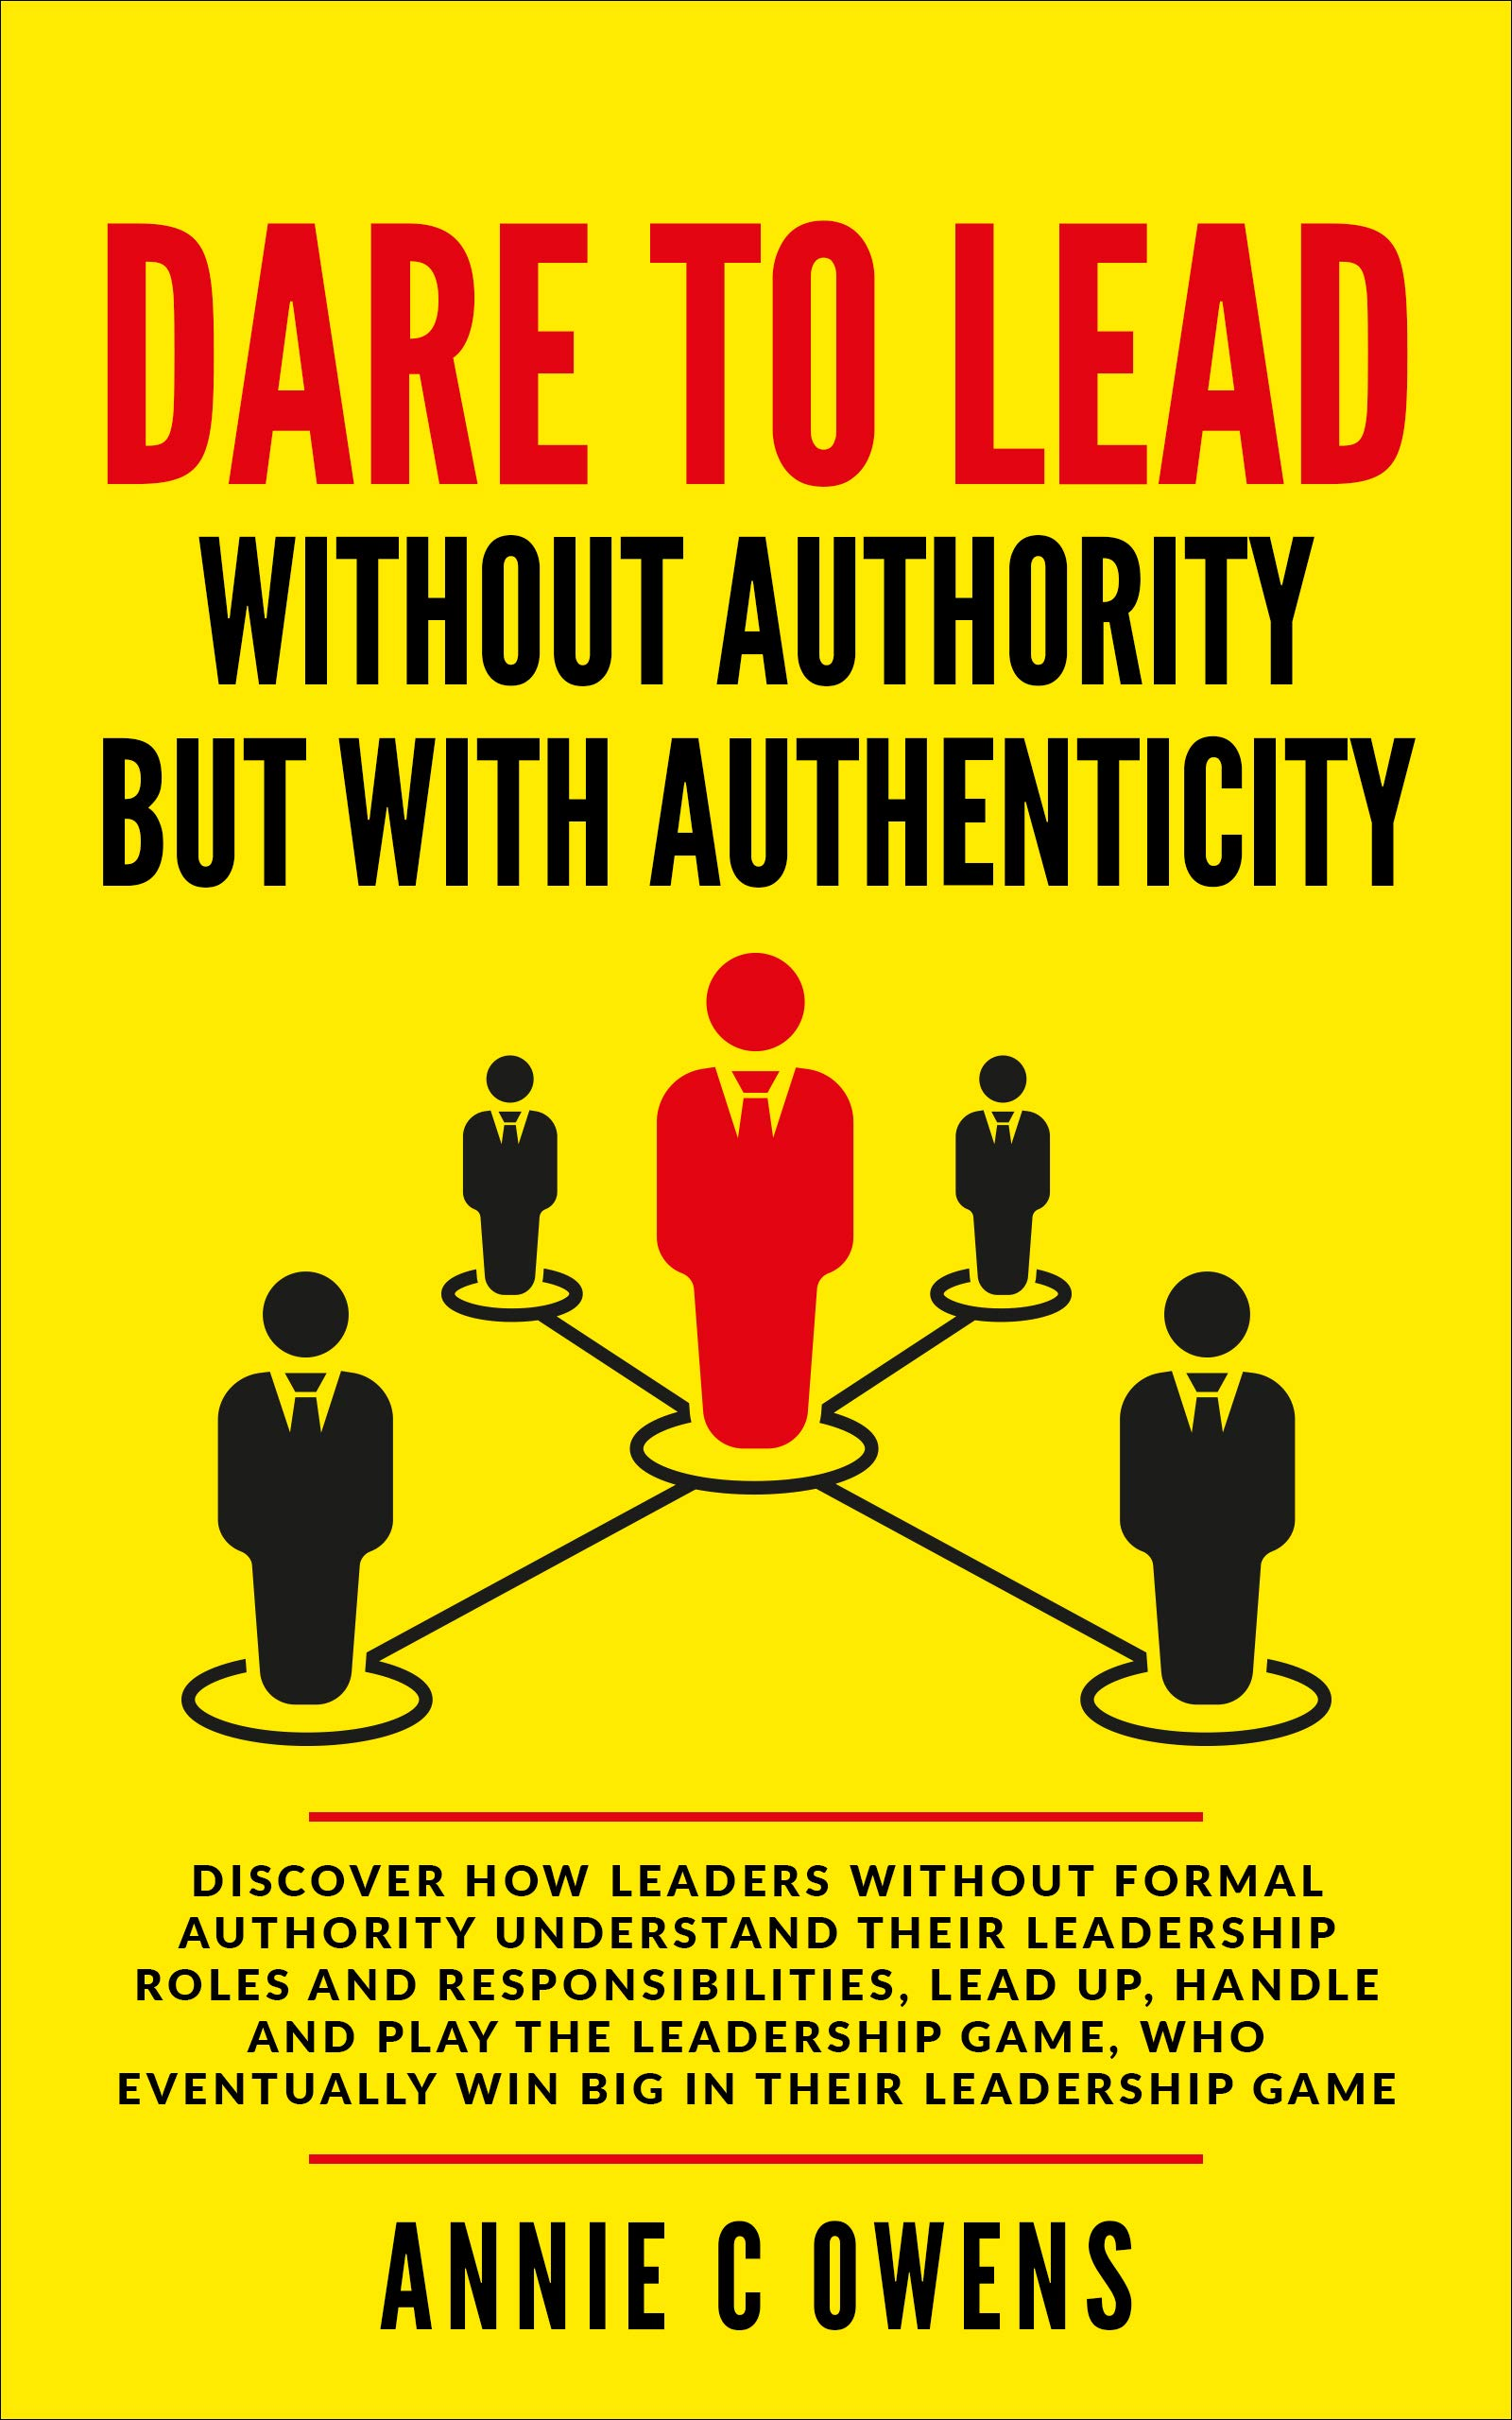 DARE TO LEAD WITHOUT AUTHORITY BUT WITH AUTHENTICITY